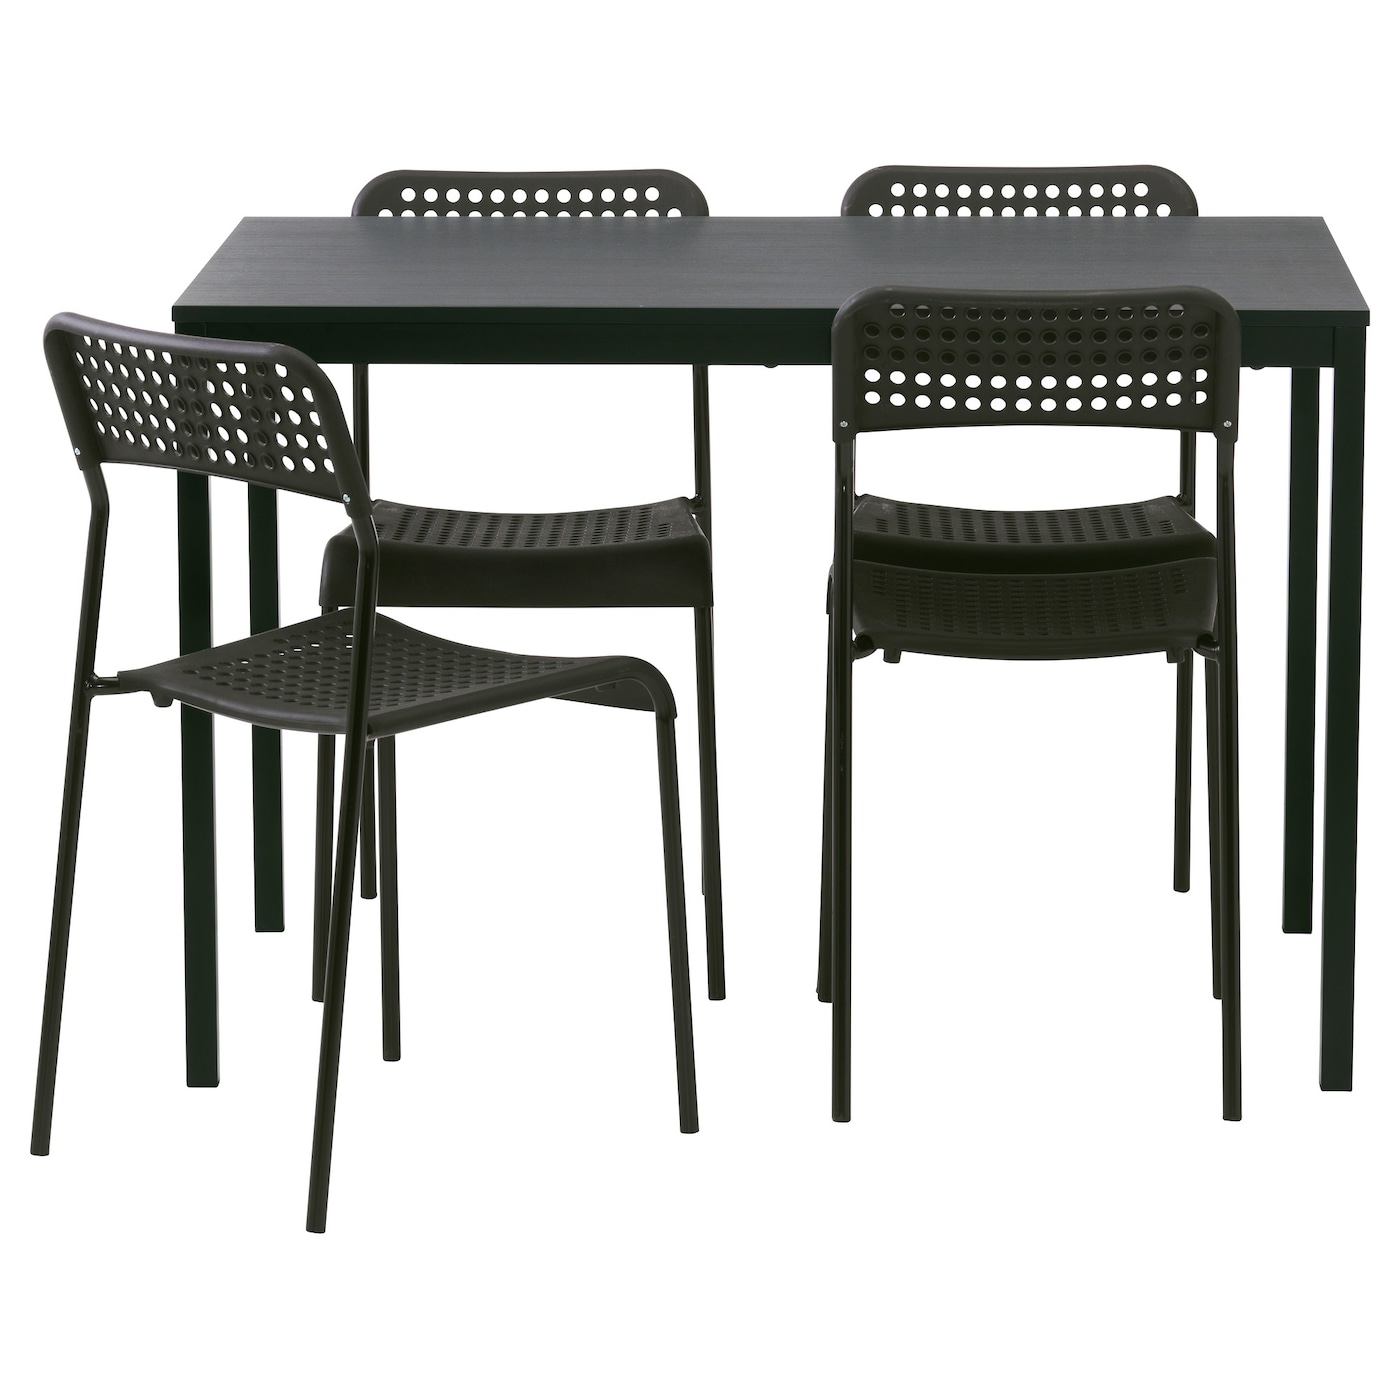 IKEA TARENDO ADDE Table And 4 Chairs Zoom In